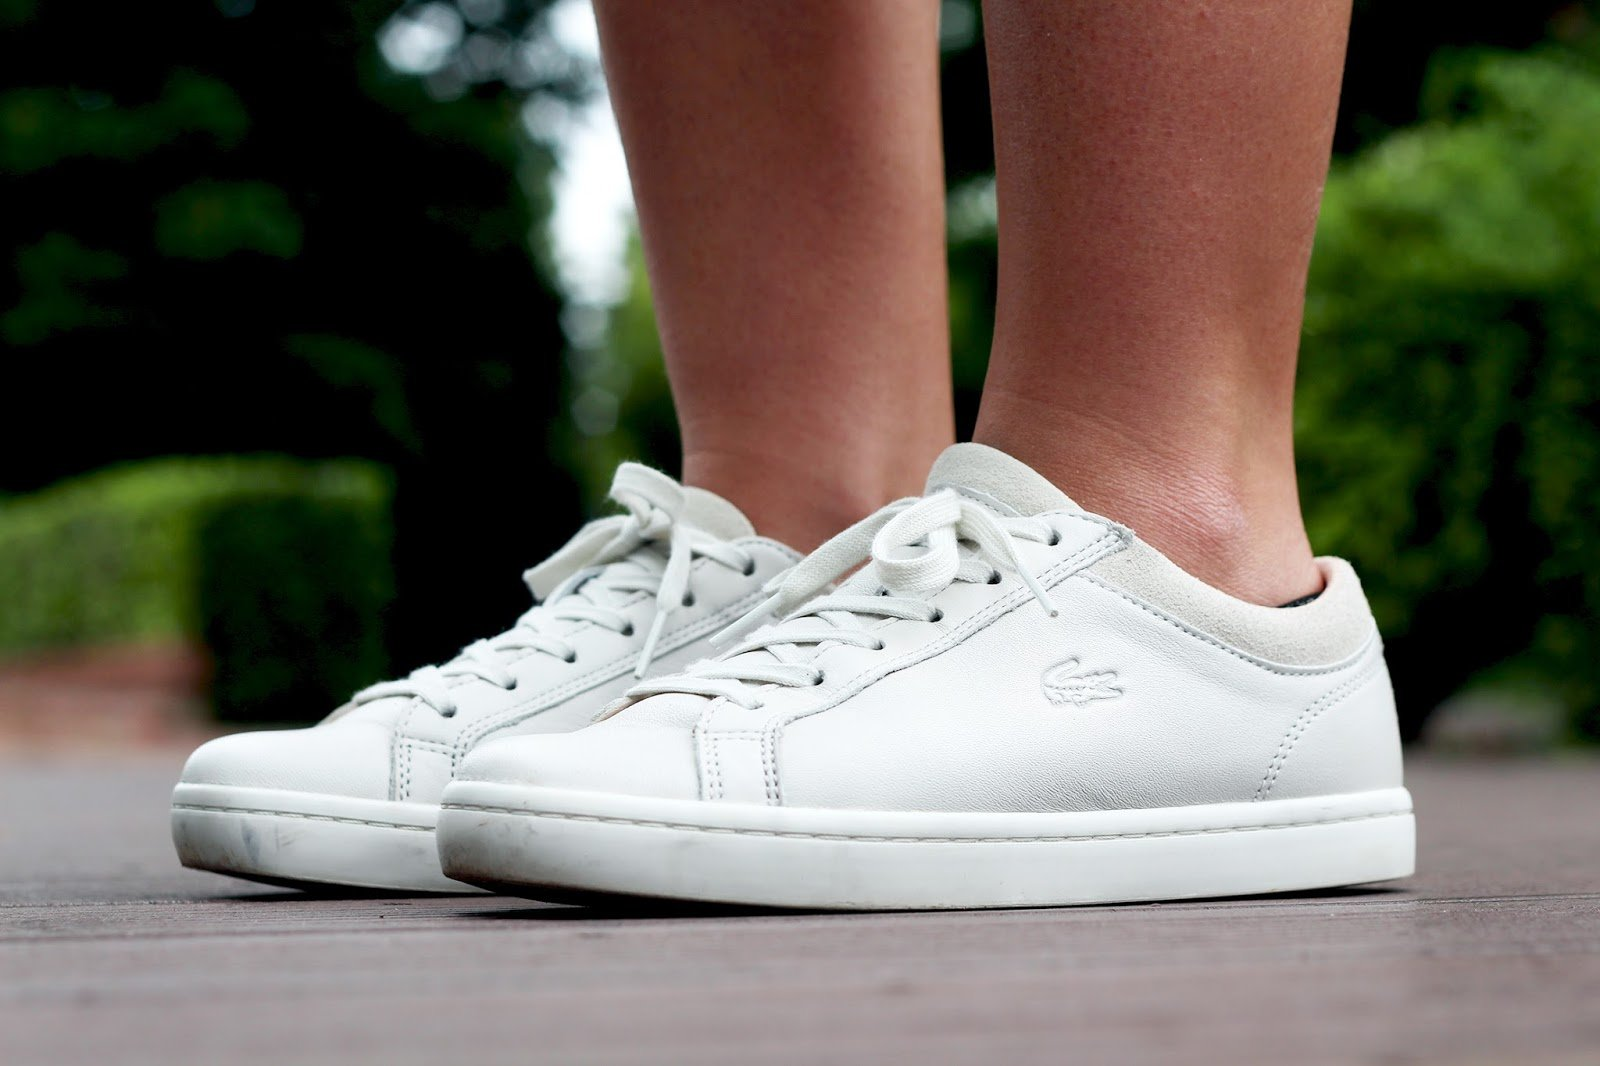 Lacoste Chaussures Sneakers Blanches